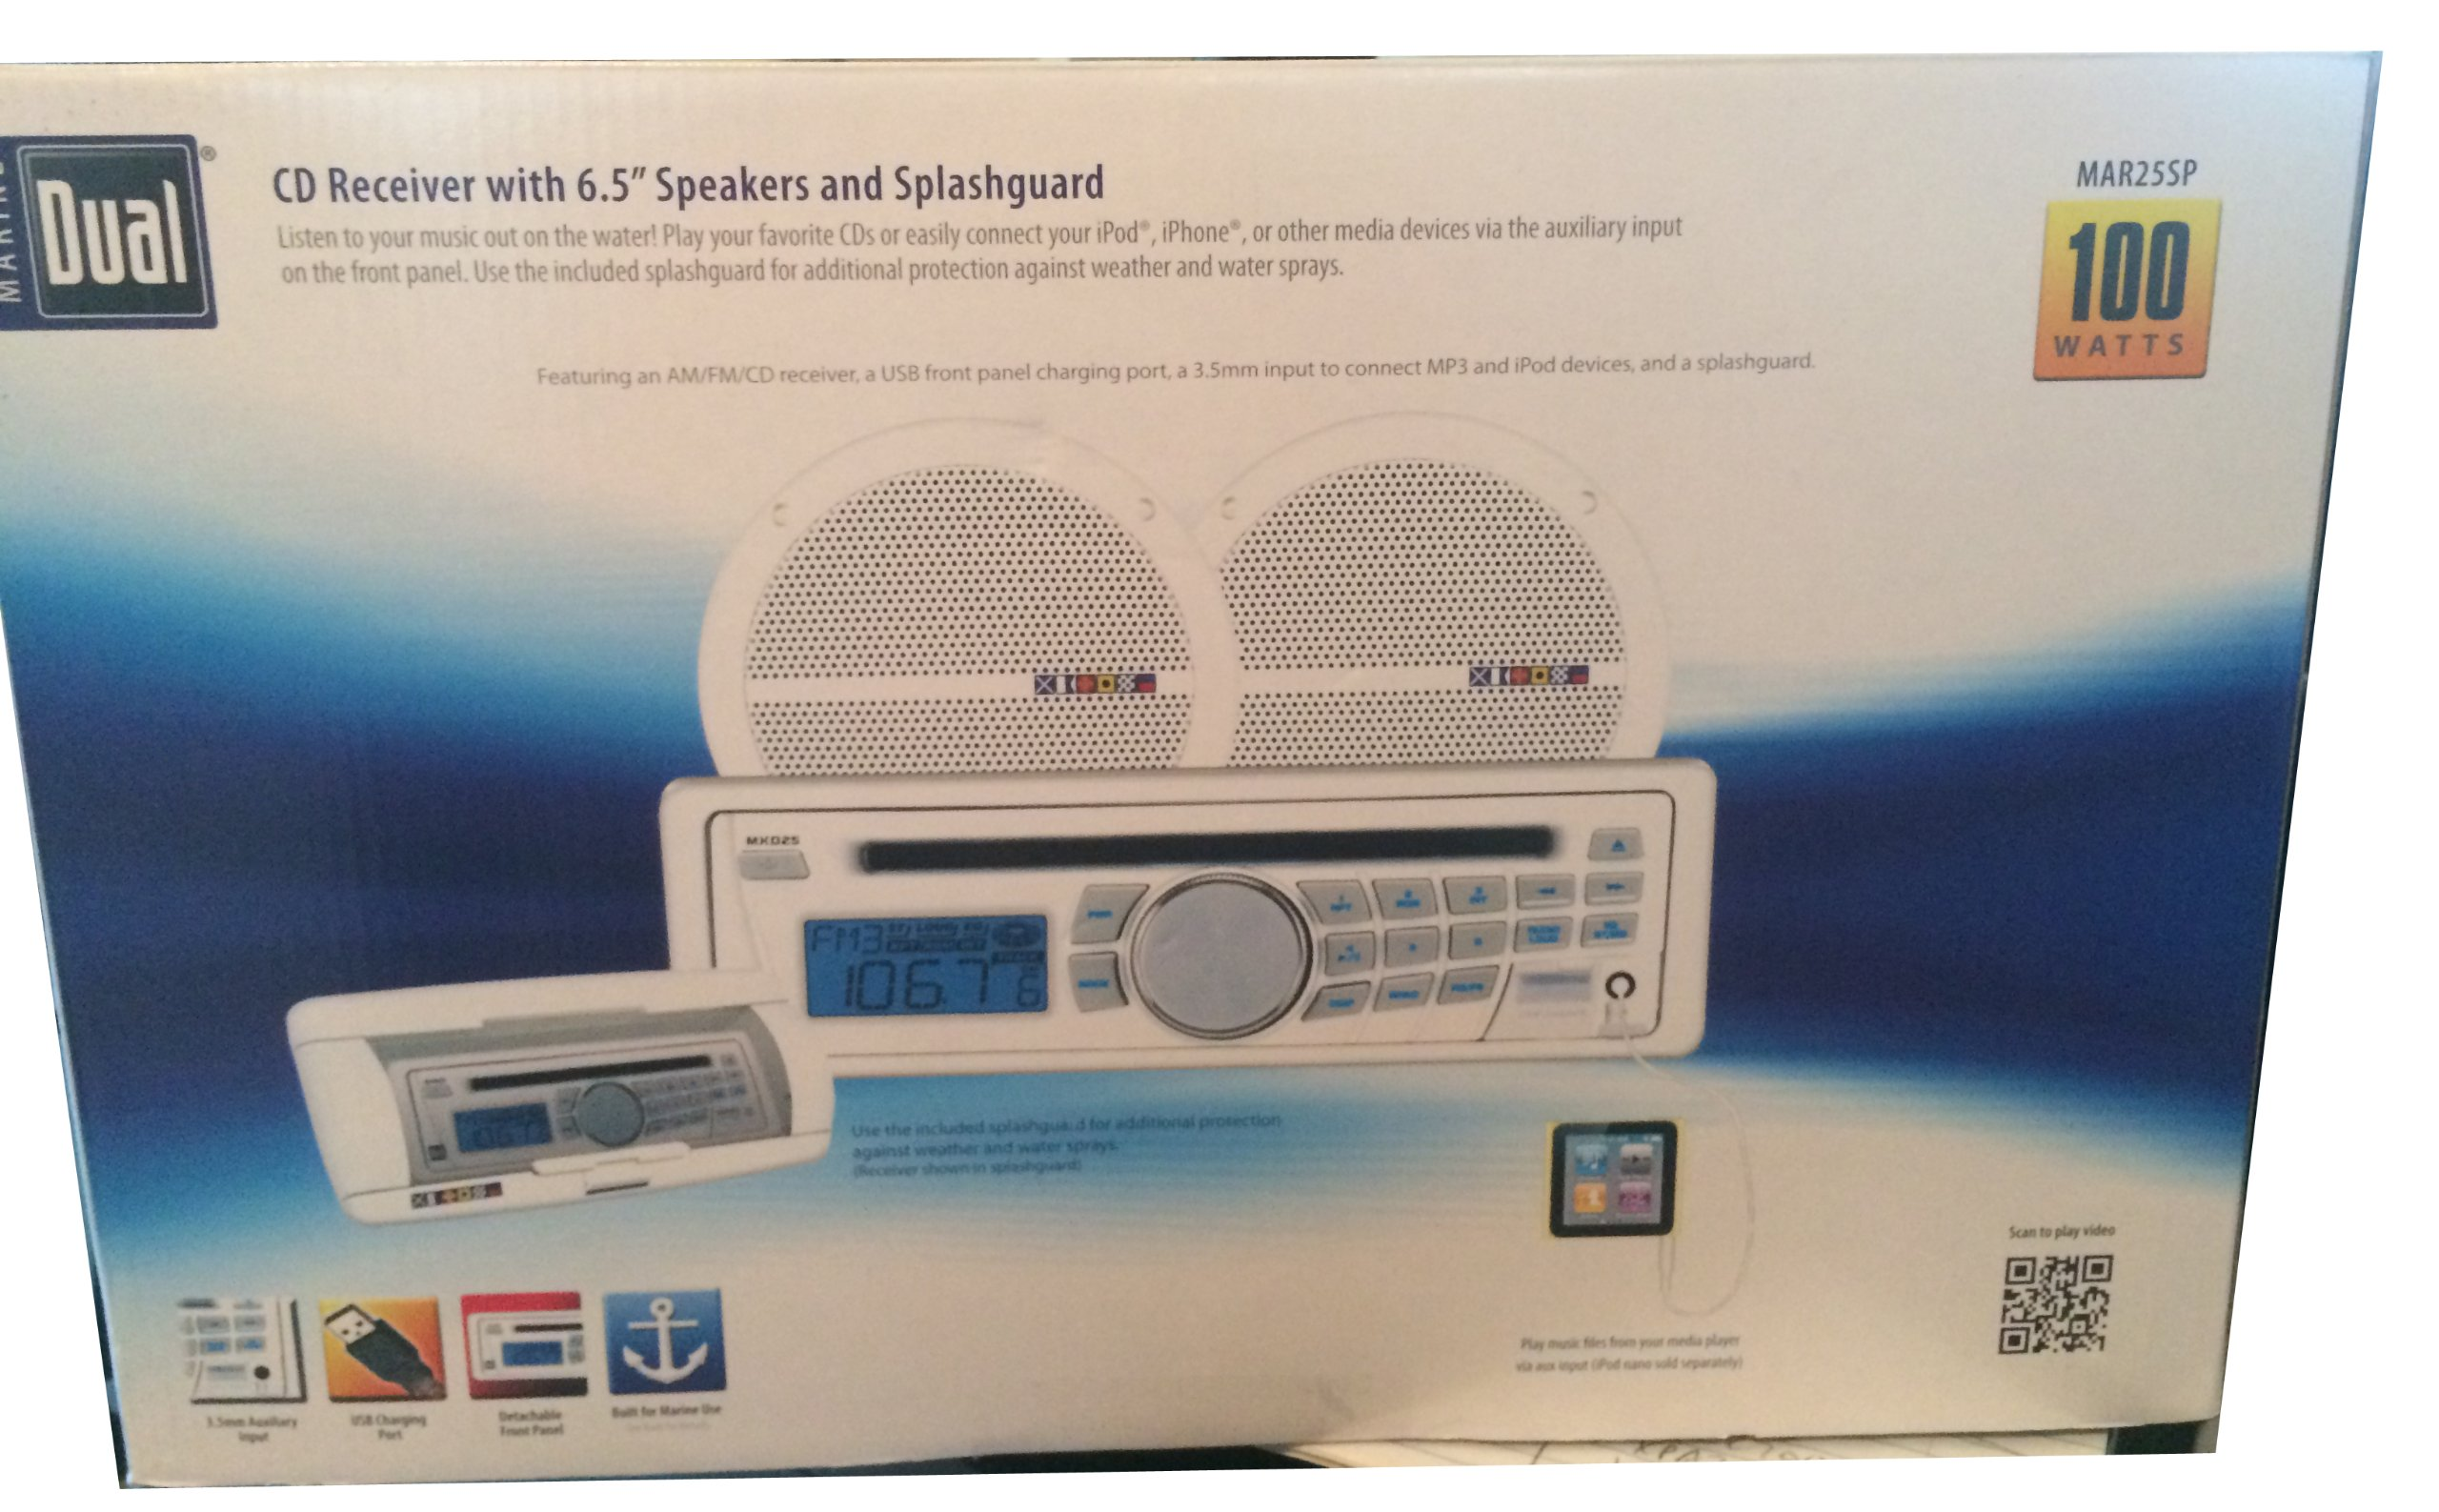 Dual MAR25SP Marine CD Receiver with 6.5'' Speakers and Universal Splashguard by Dual Electronics (Image #1)